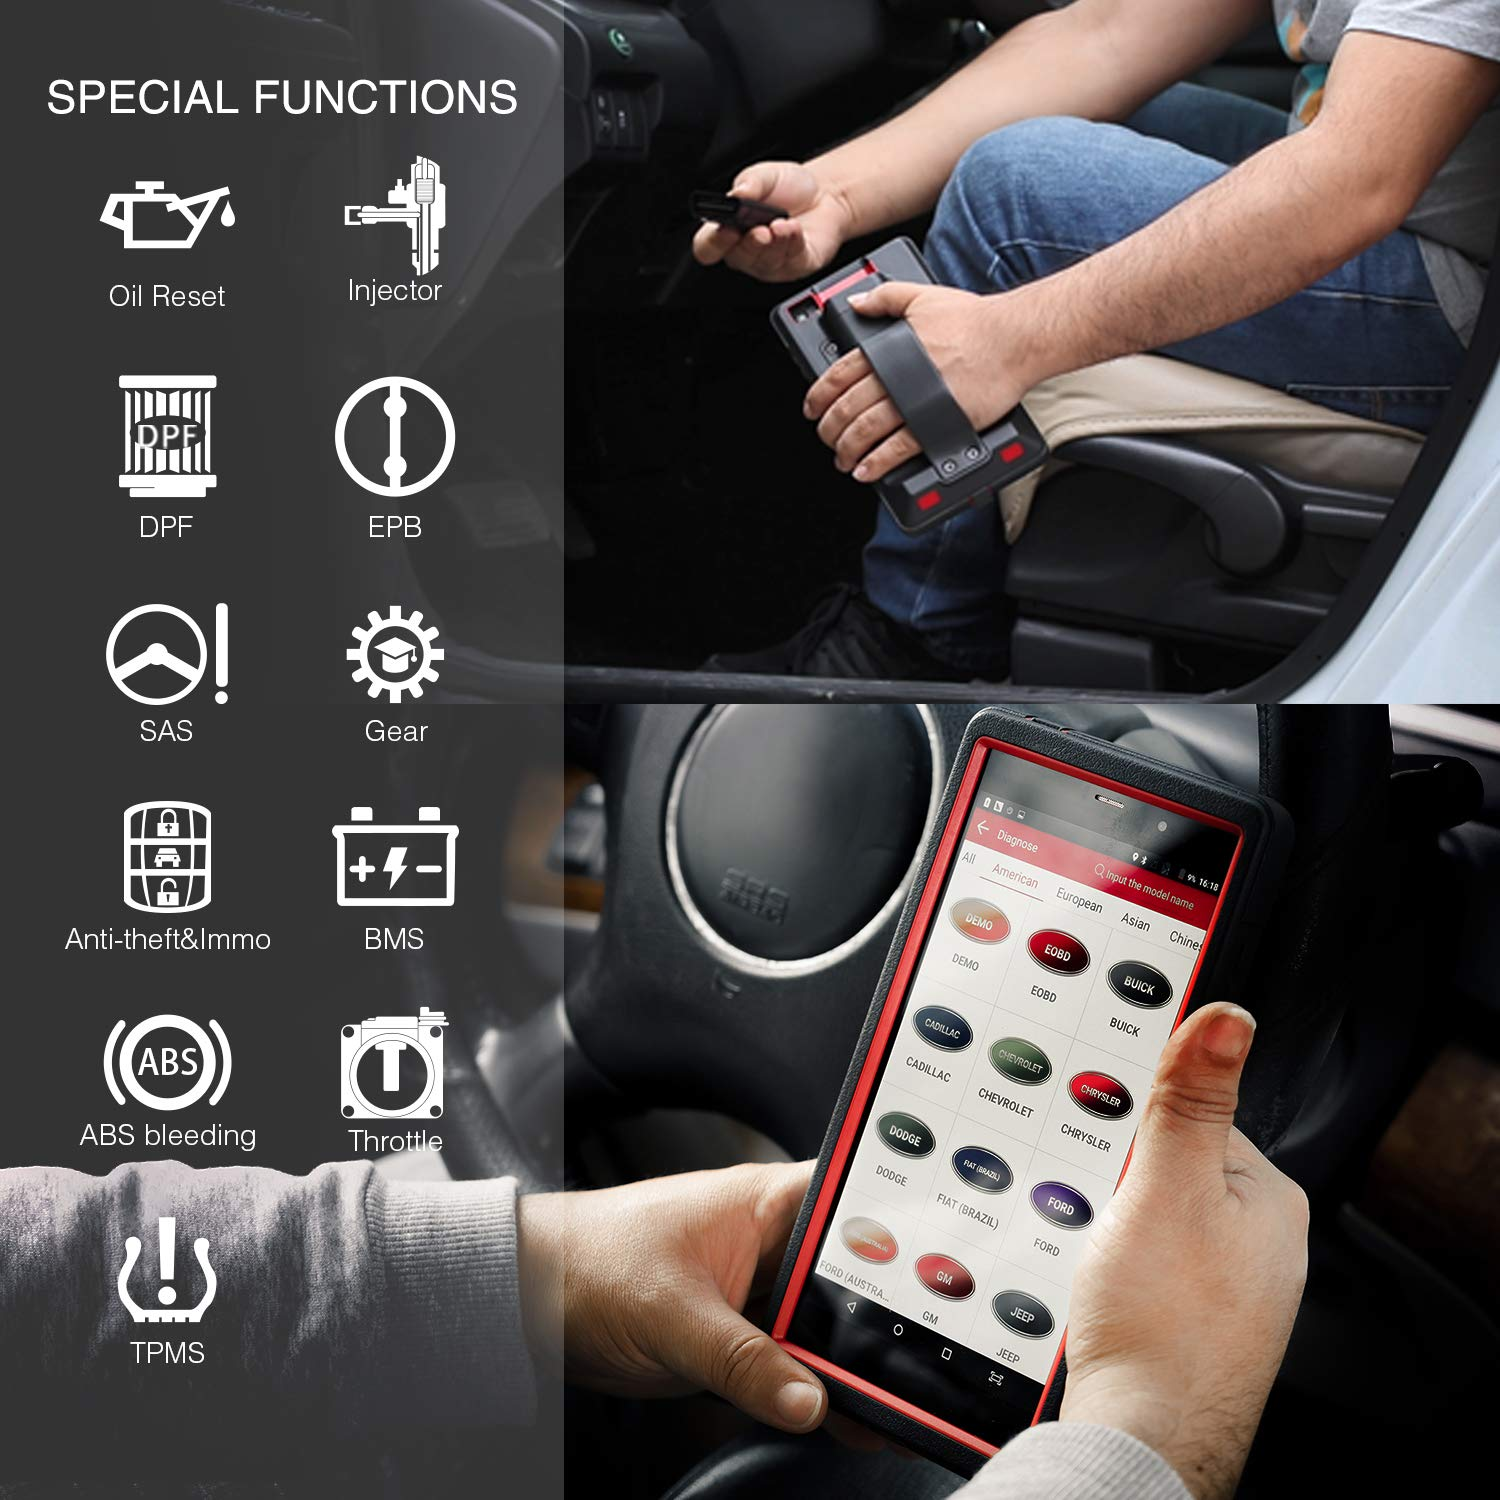 LAUNCH X431 Pro Mini Wifi/Bluetooth Bi-Directional OBD OBD2 Scan Tool Actuation Test, ECU Coding, Key Fob Program,Reset Functions, Free Update 2 YRs, ALL System OBD2 Diagnostic Scanner by LAUNCH (Image #3)